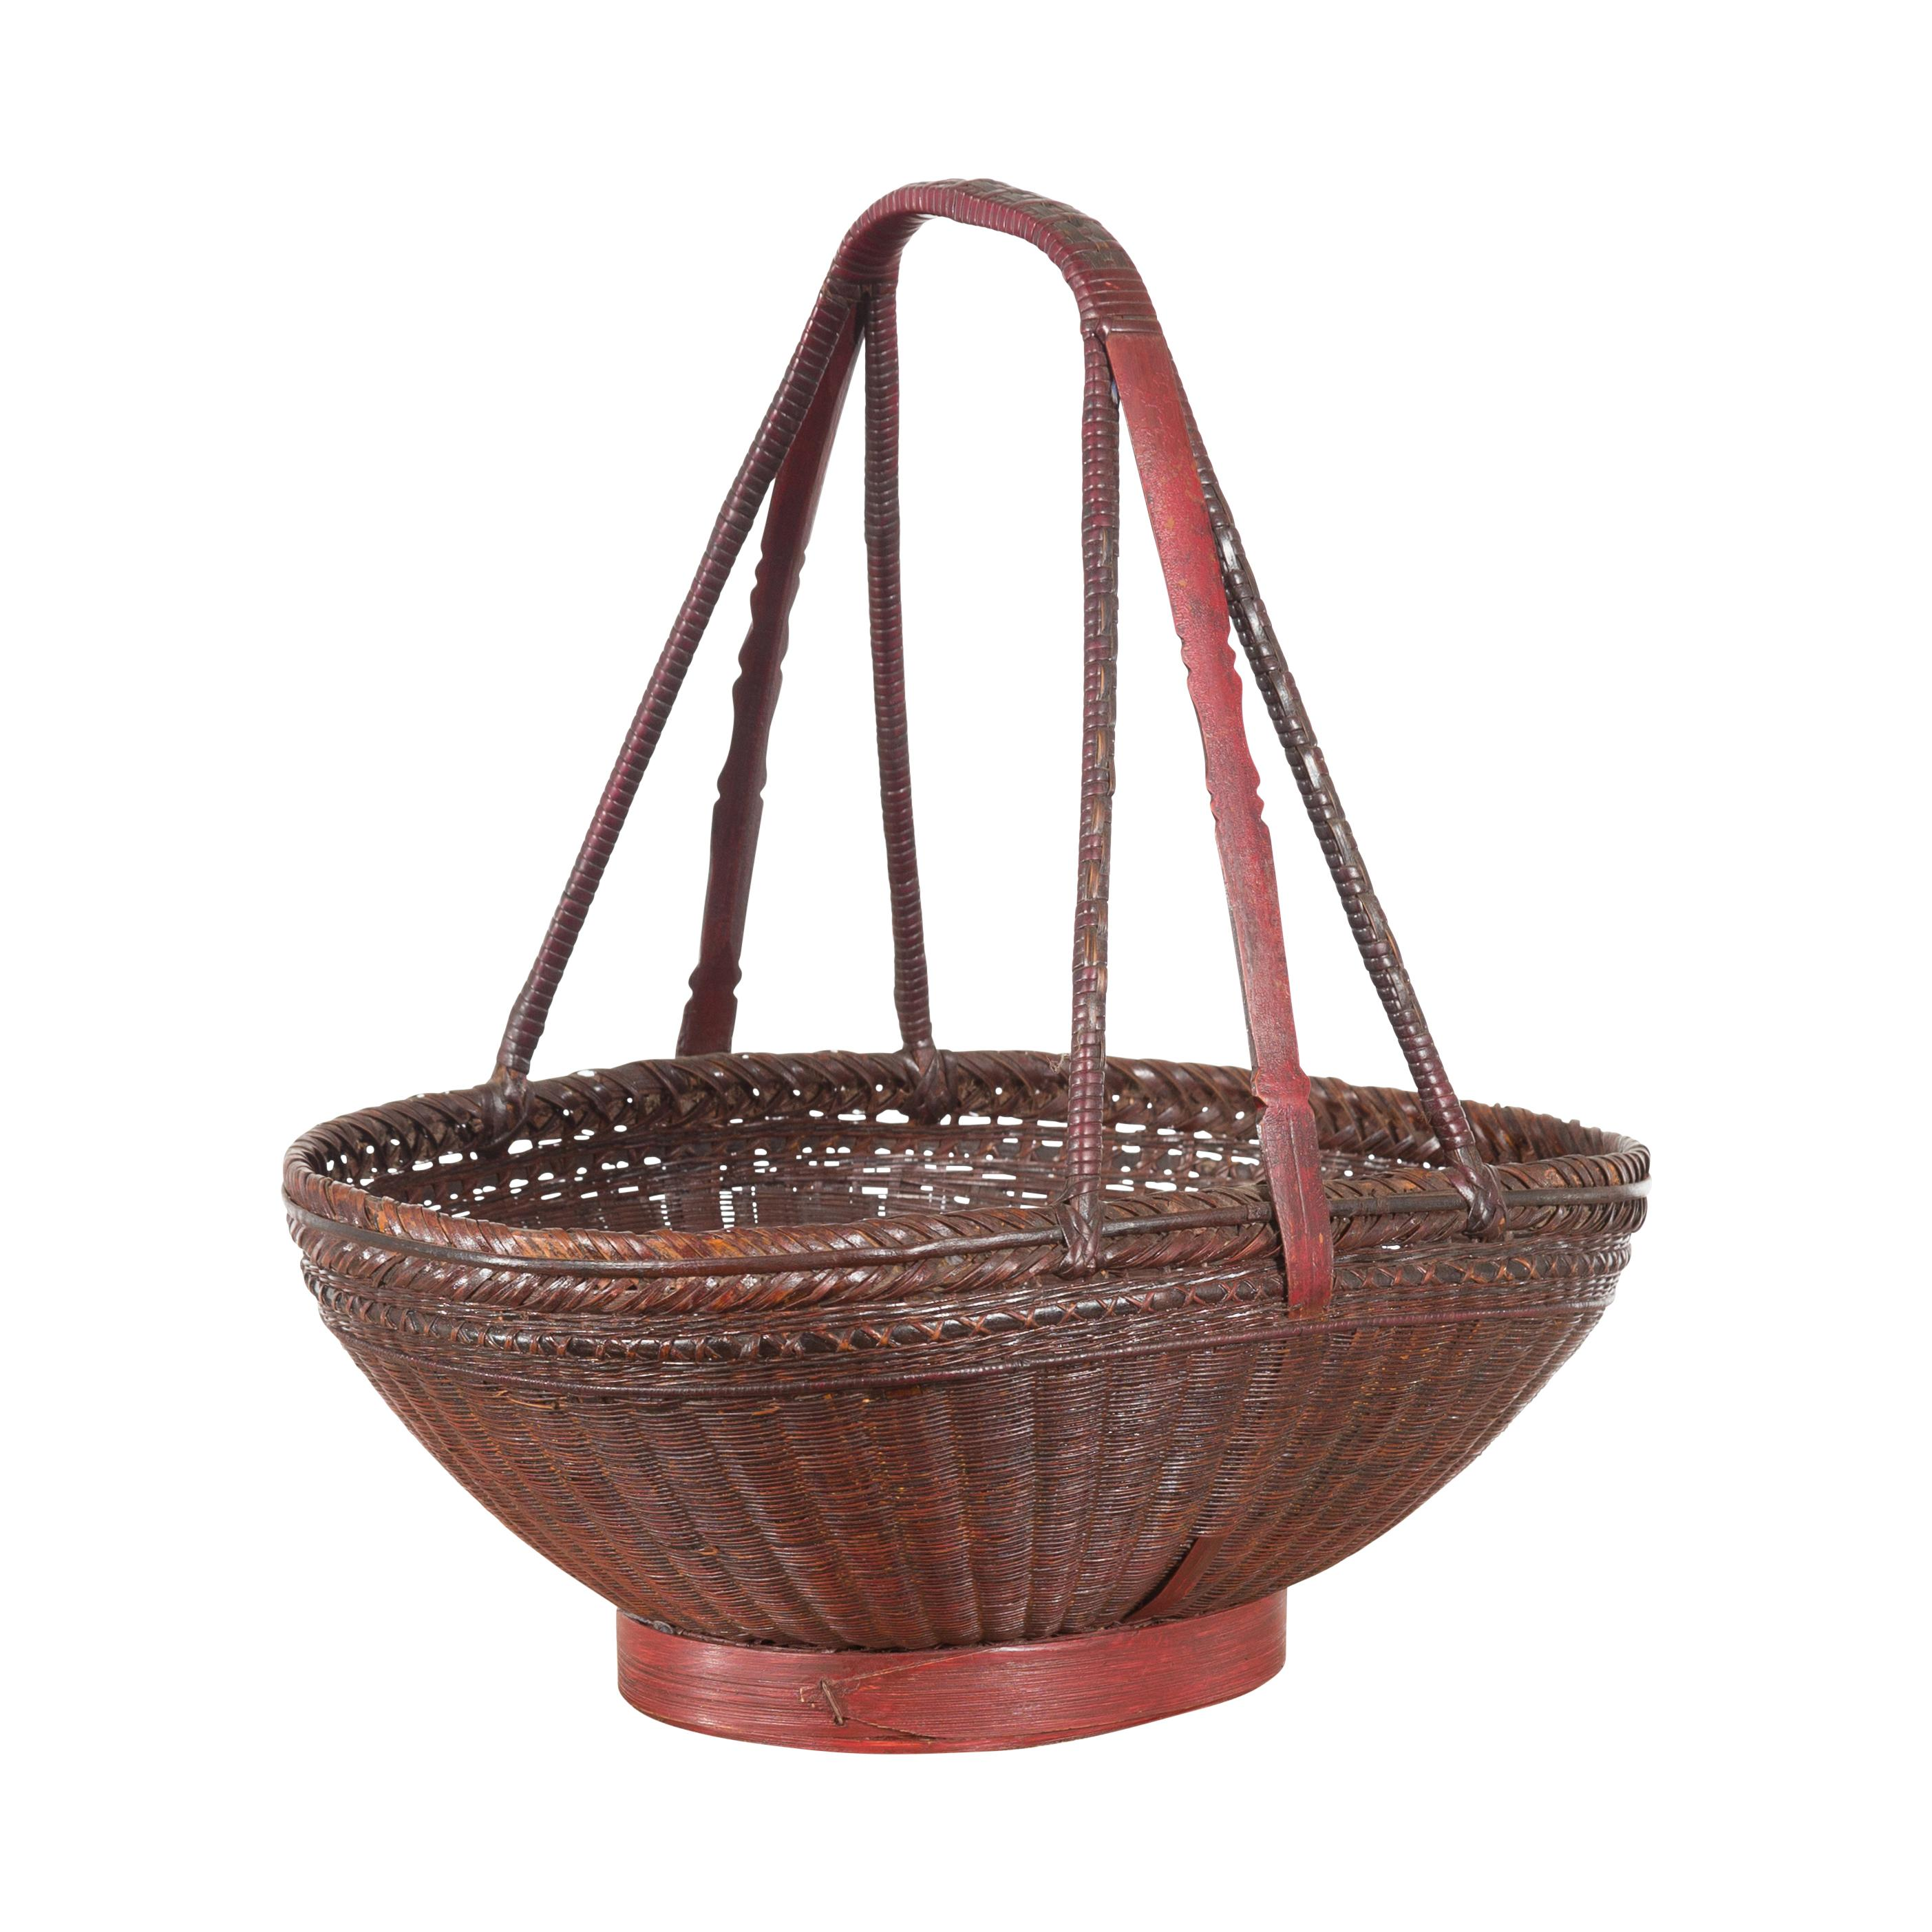 Chinese Woven Rattan Red and Brown Market Basket with Large Tripartite Handle